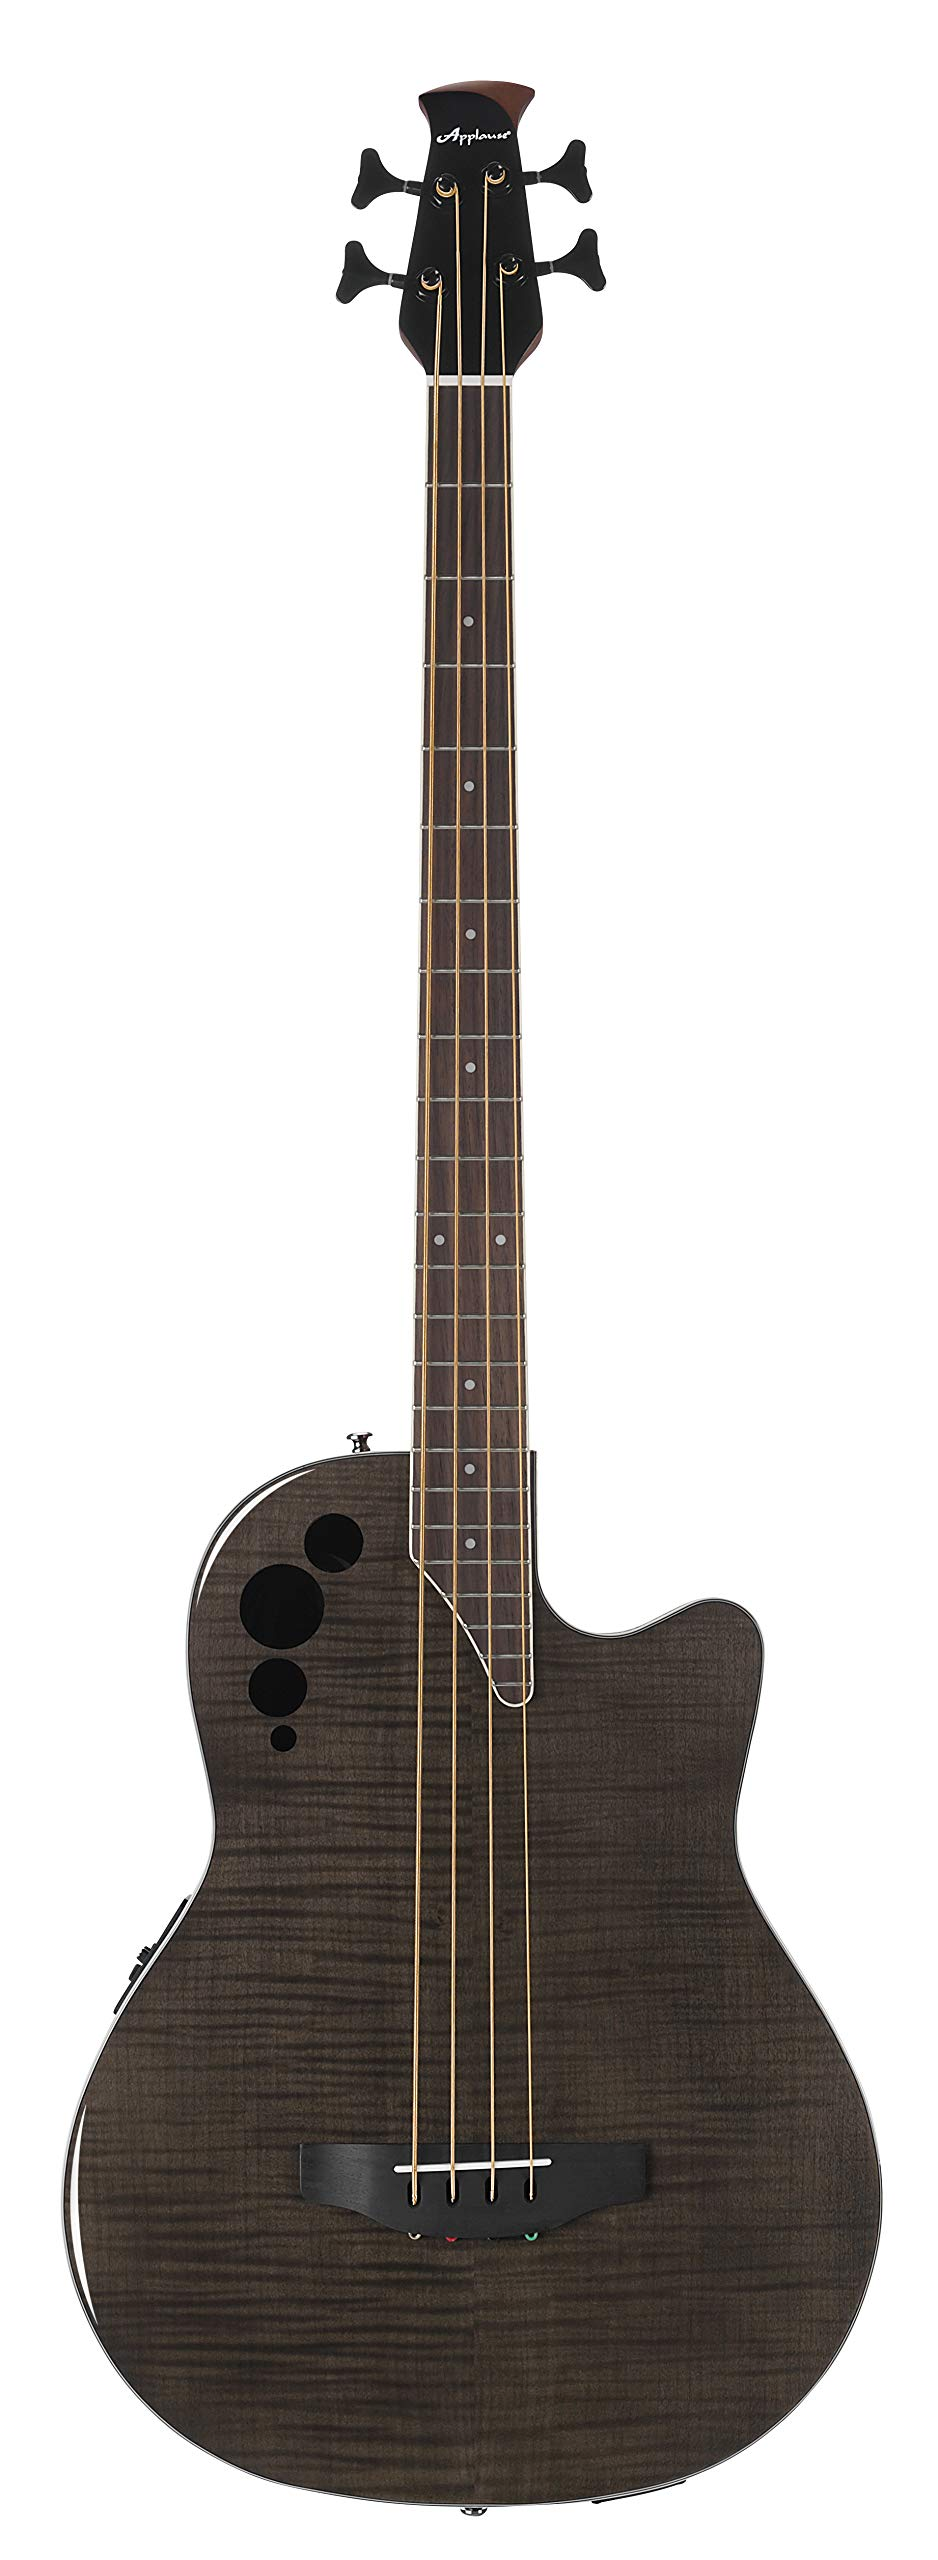 Ovation Applause 4 String Acoustic-Electric Bass Guitar, Right, Transparent Black Flame Maple (AEB4IIP-TBKF) by Ovation